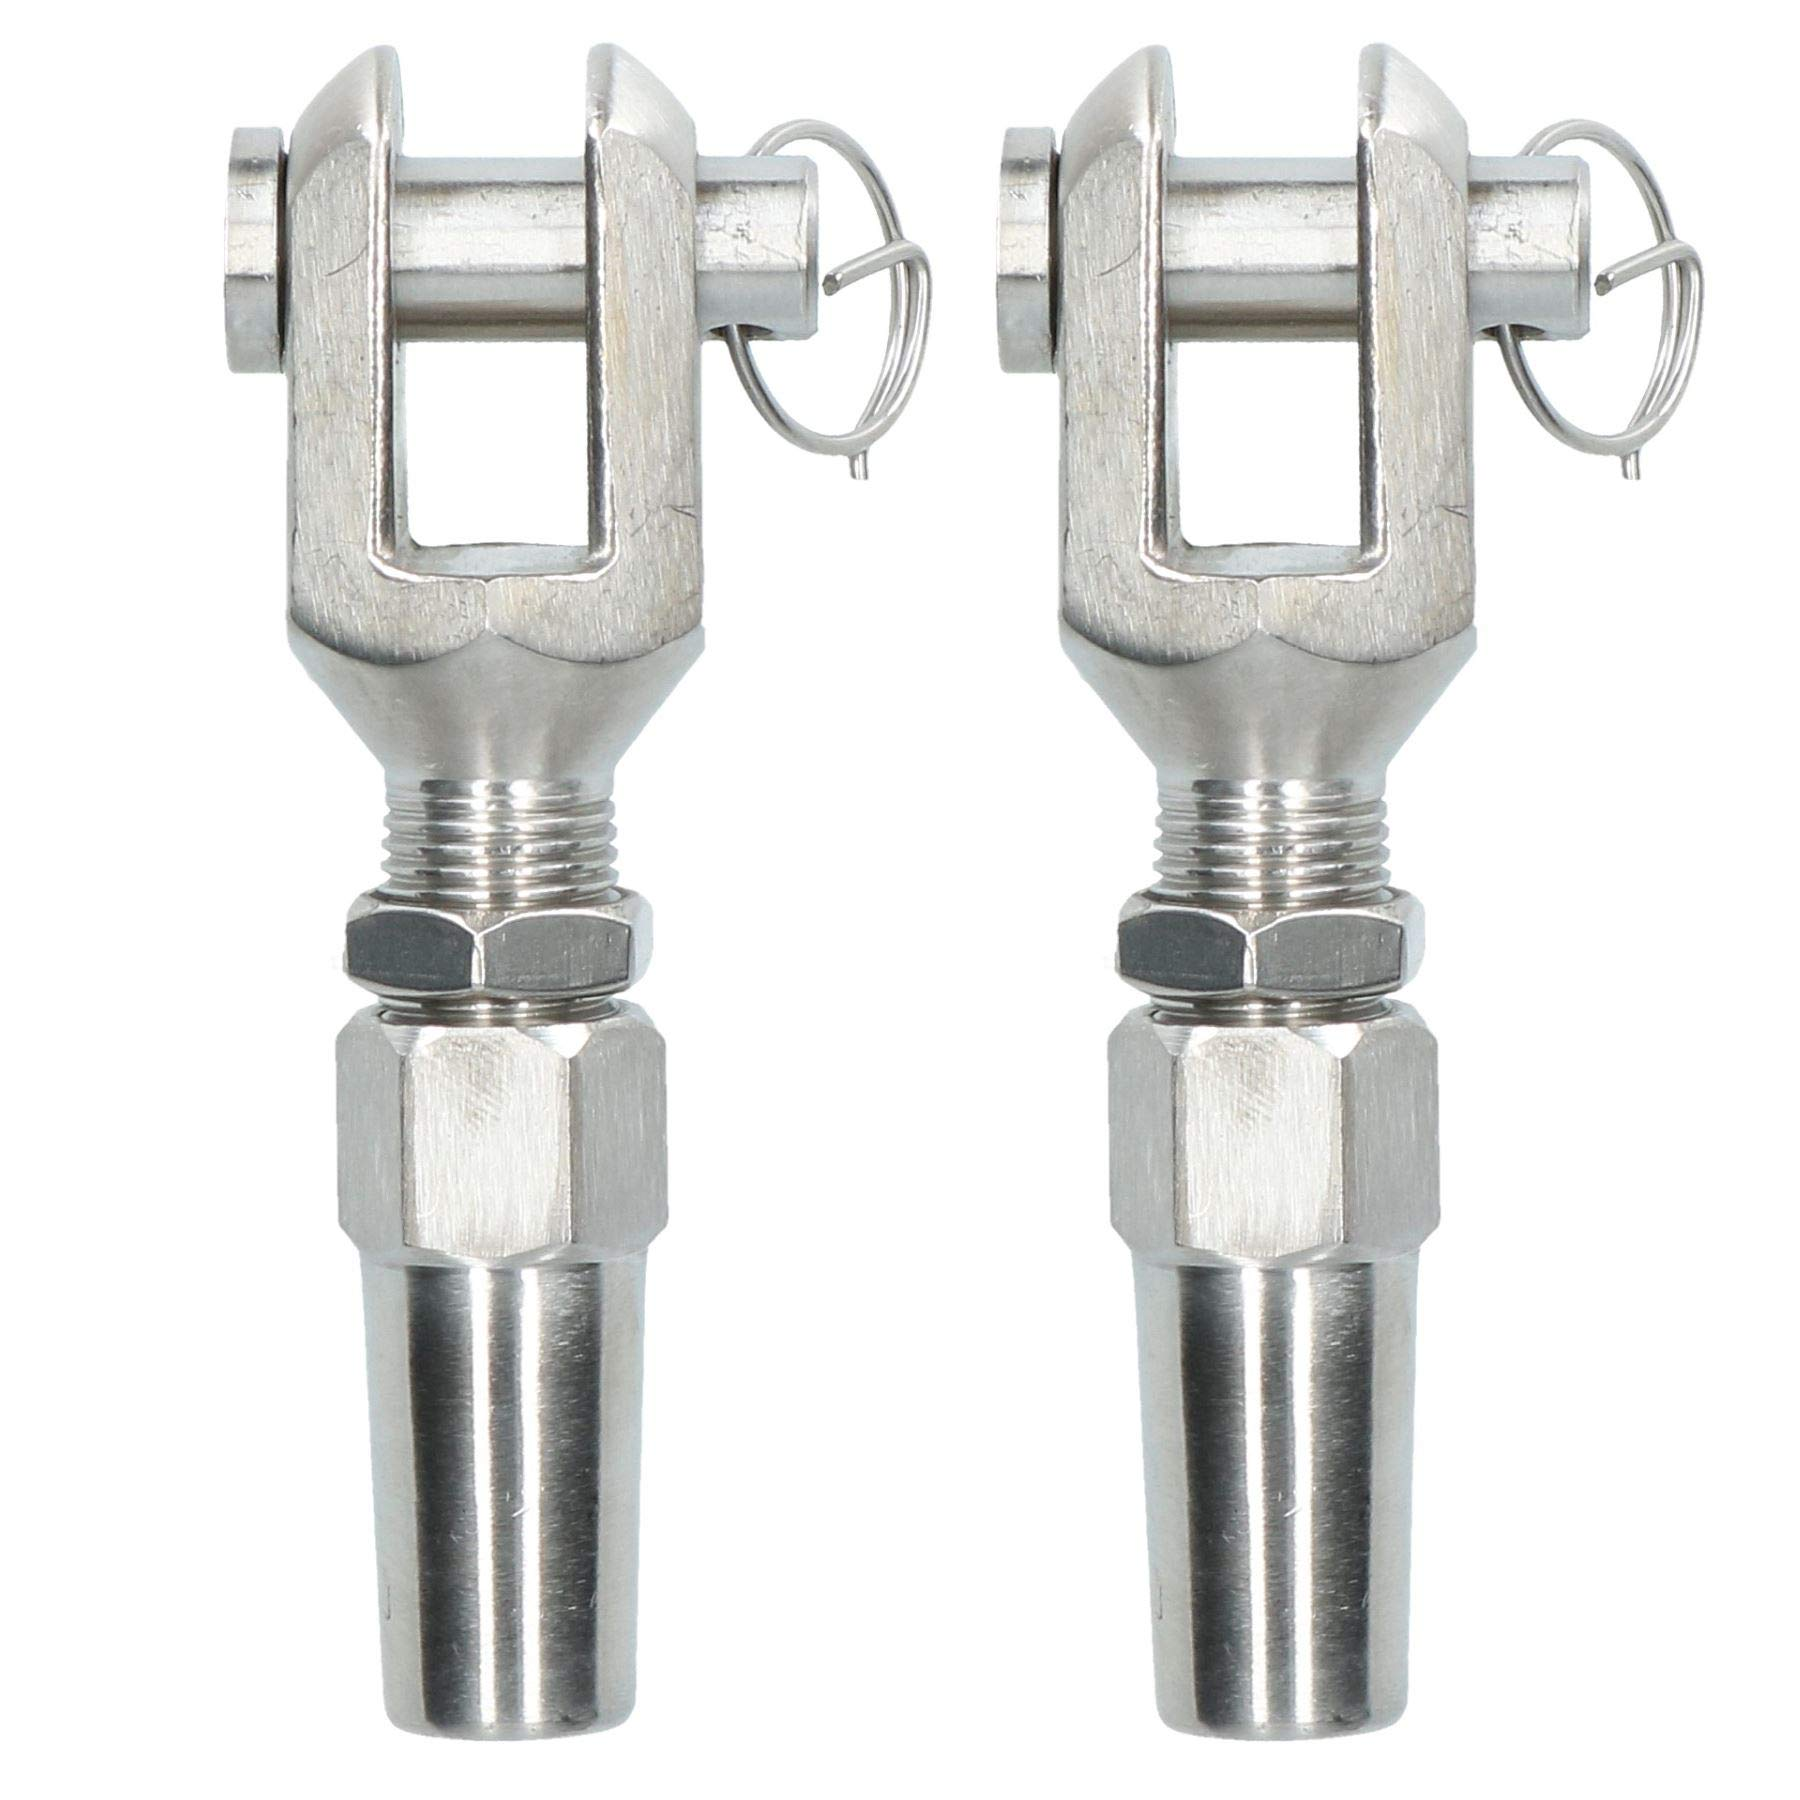 AB Tools-Deacon 6mm Wire Cable Rope Jaw Rigging Terminal Swageless DIY Fitting Stainless 2 PK by AB Tools-Deacon